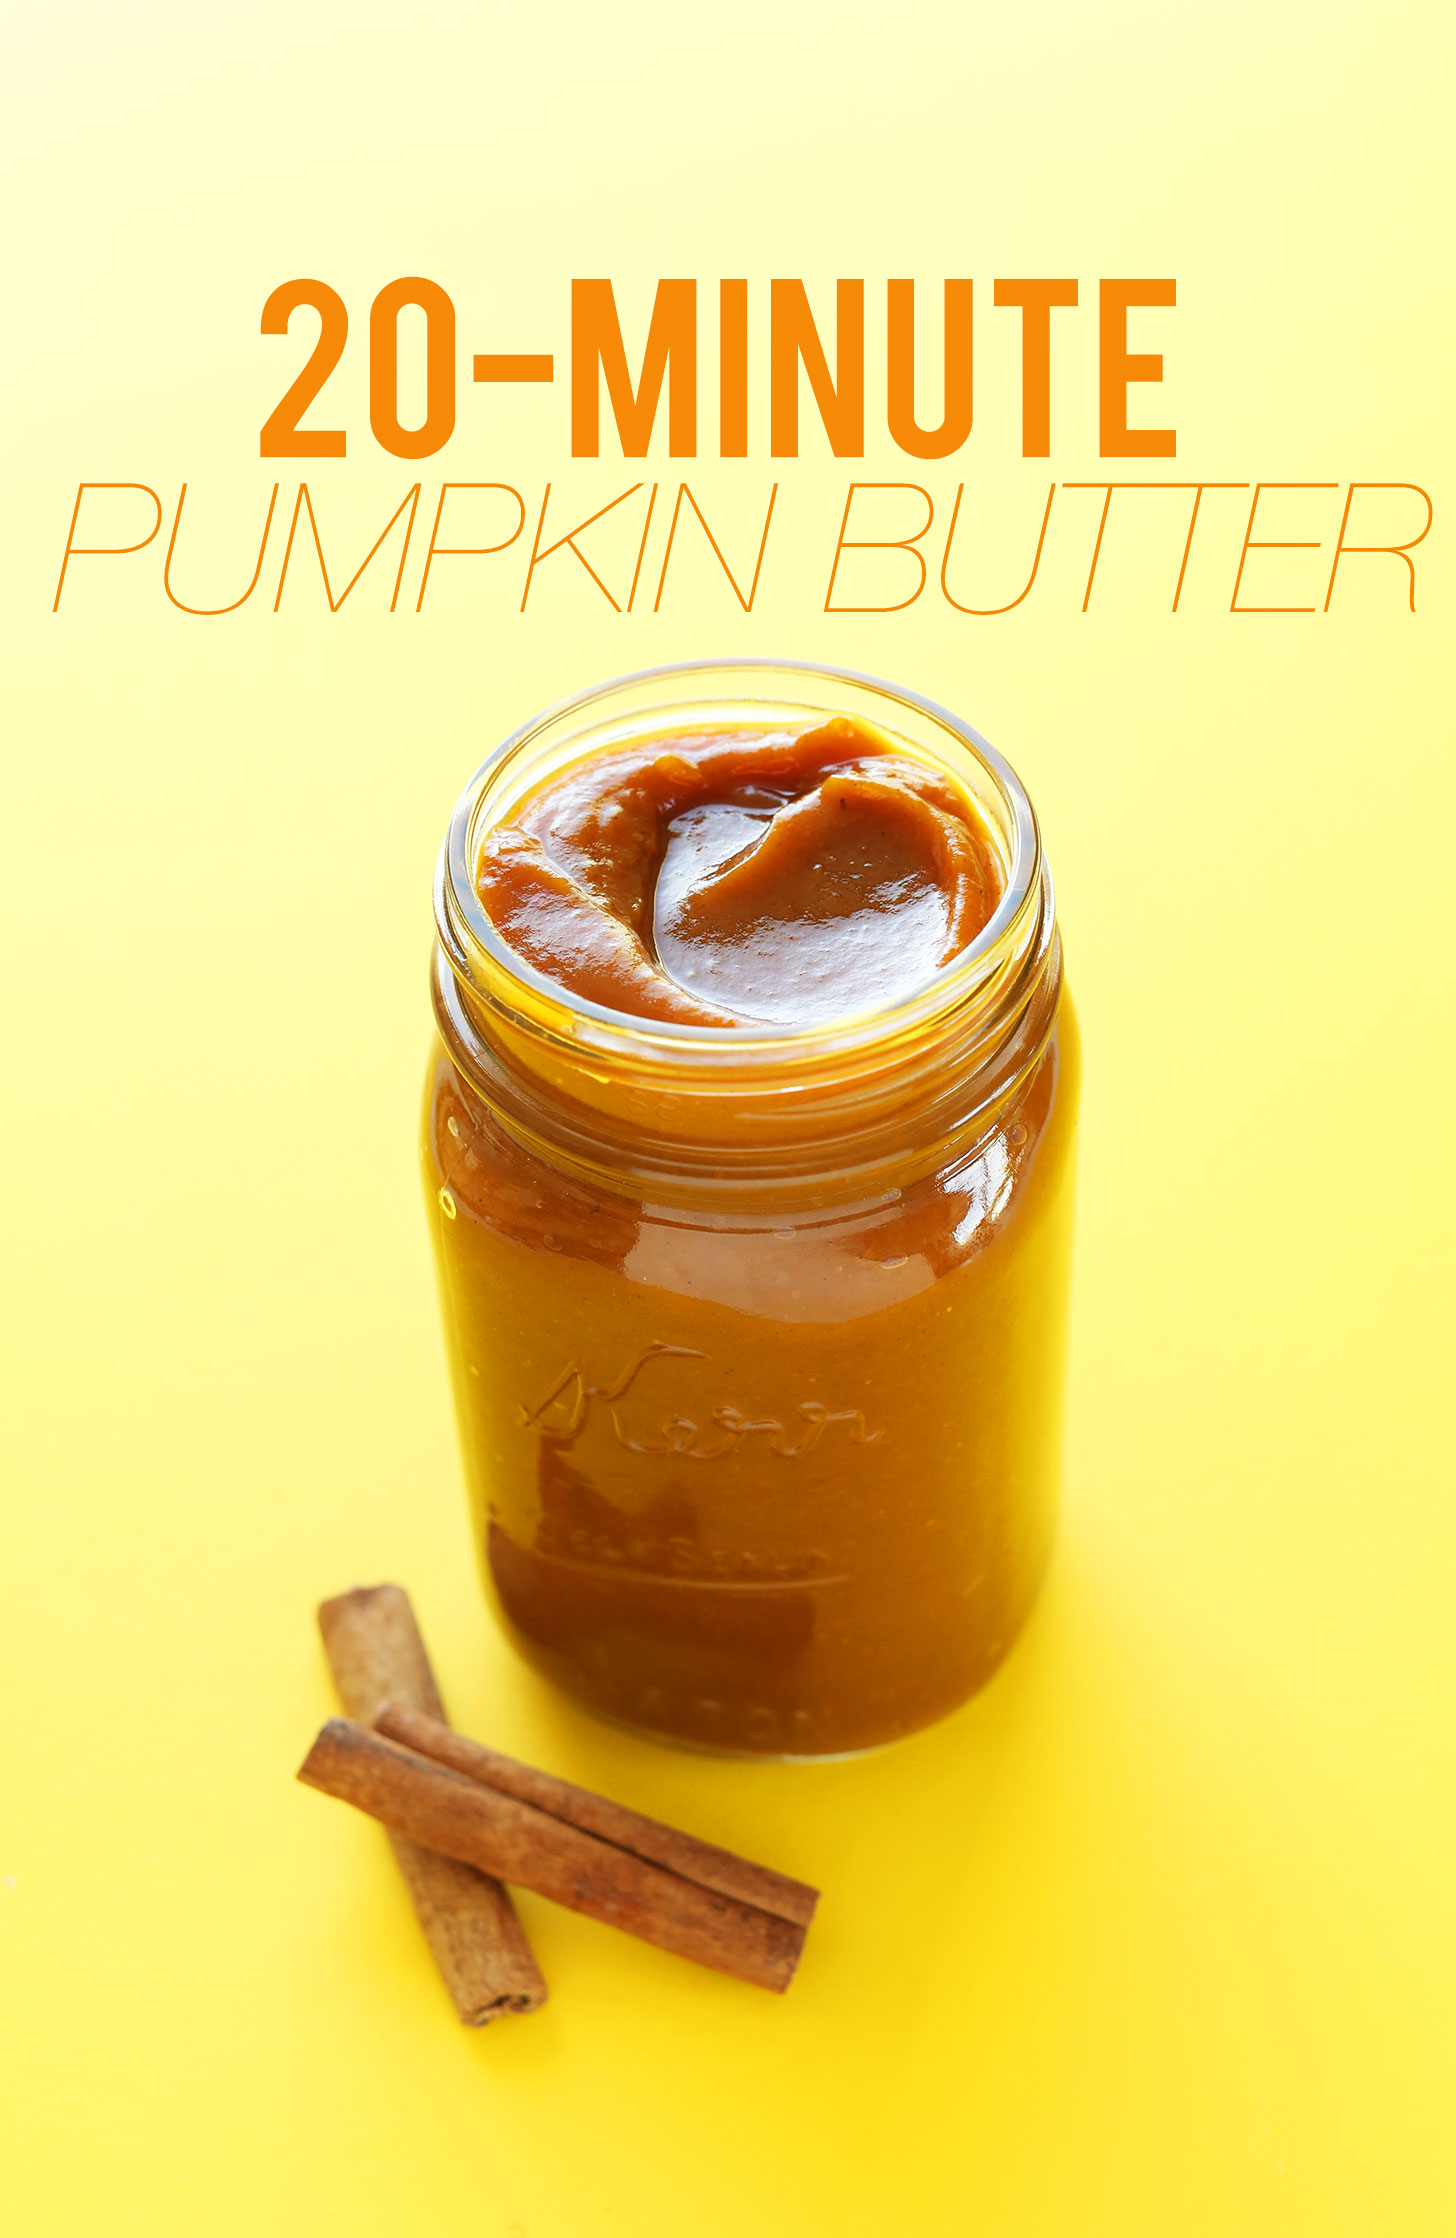 EASY 20-MINUTE Pumpkin Butter! Perfect for adding to fall treats #recipe #pumkin #fall #pumpkinspice #dessert #minimalistbaker